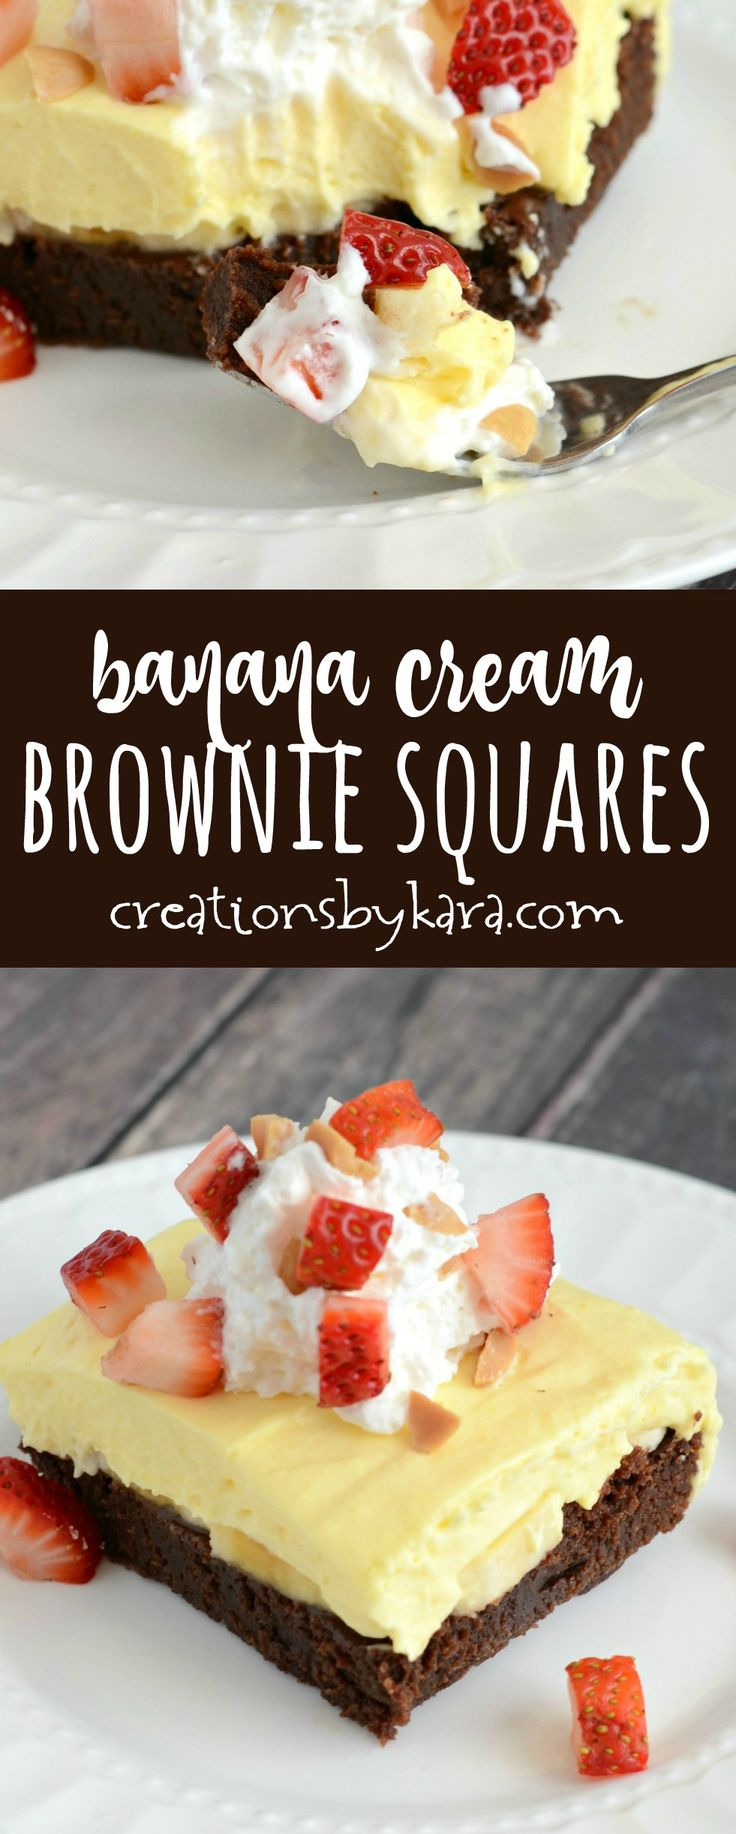 Banana Cream Brownie Squares - a yummy update on banana cream pie. Fudgy brownies, bananas, pudding, strawberries, cream, and chopped nuts all layered in one incredible banana dessert! via creationsbykara.com